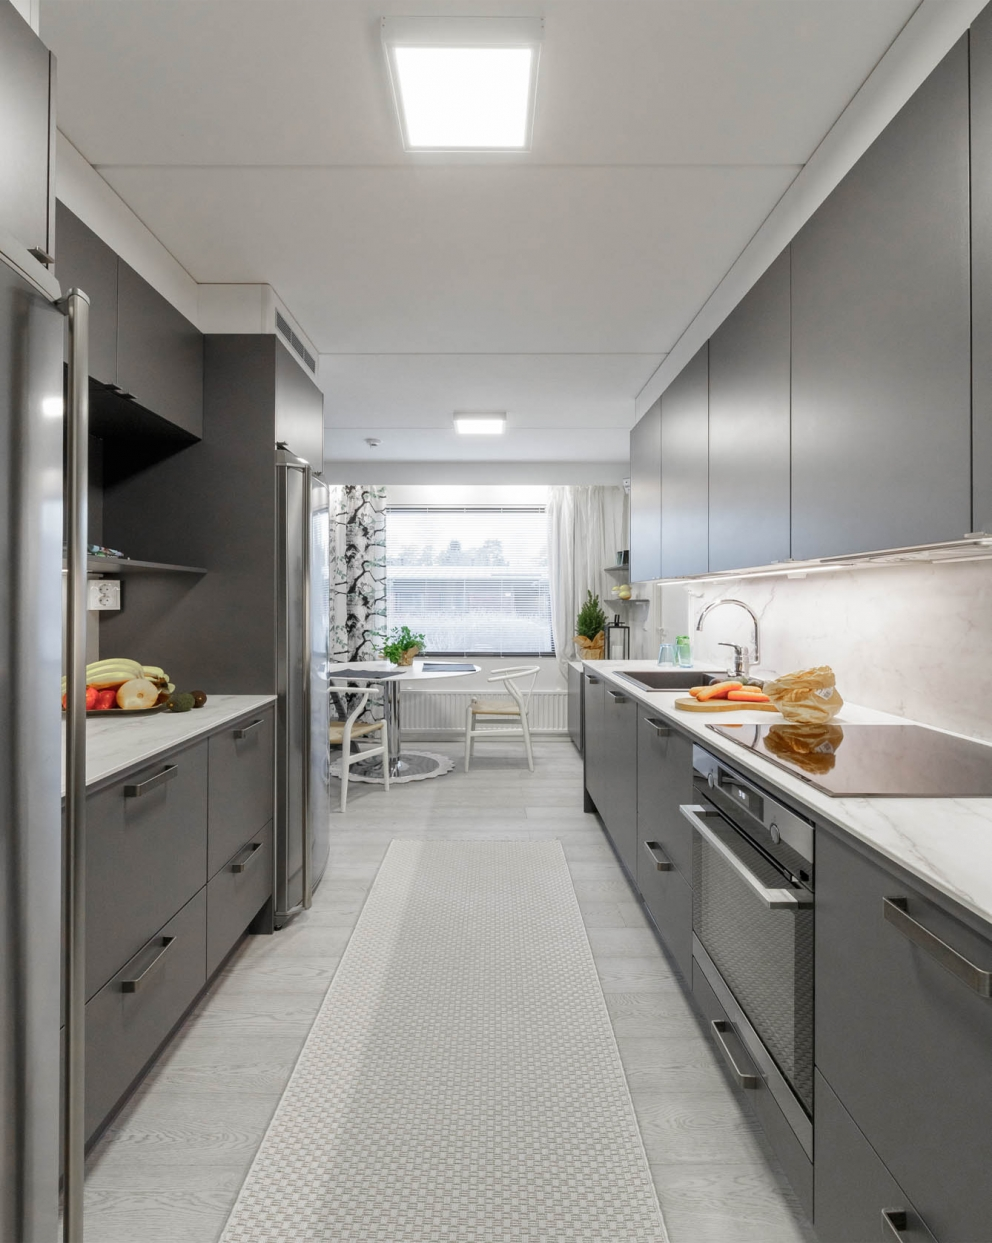 Miinus eco friendly matt grey modern galley kitchen length view